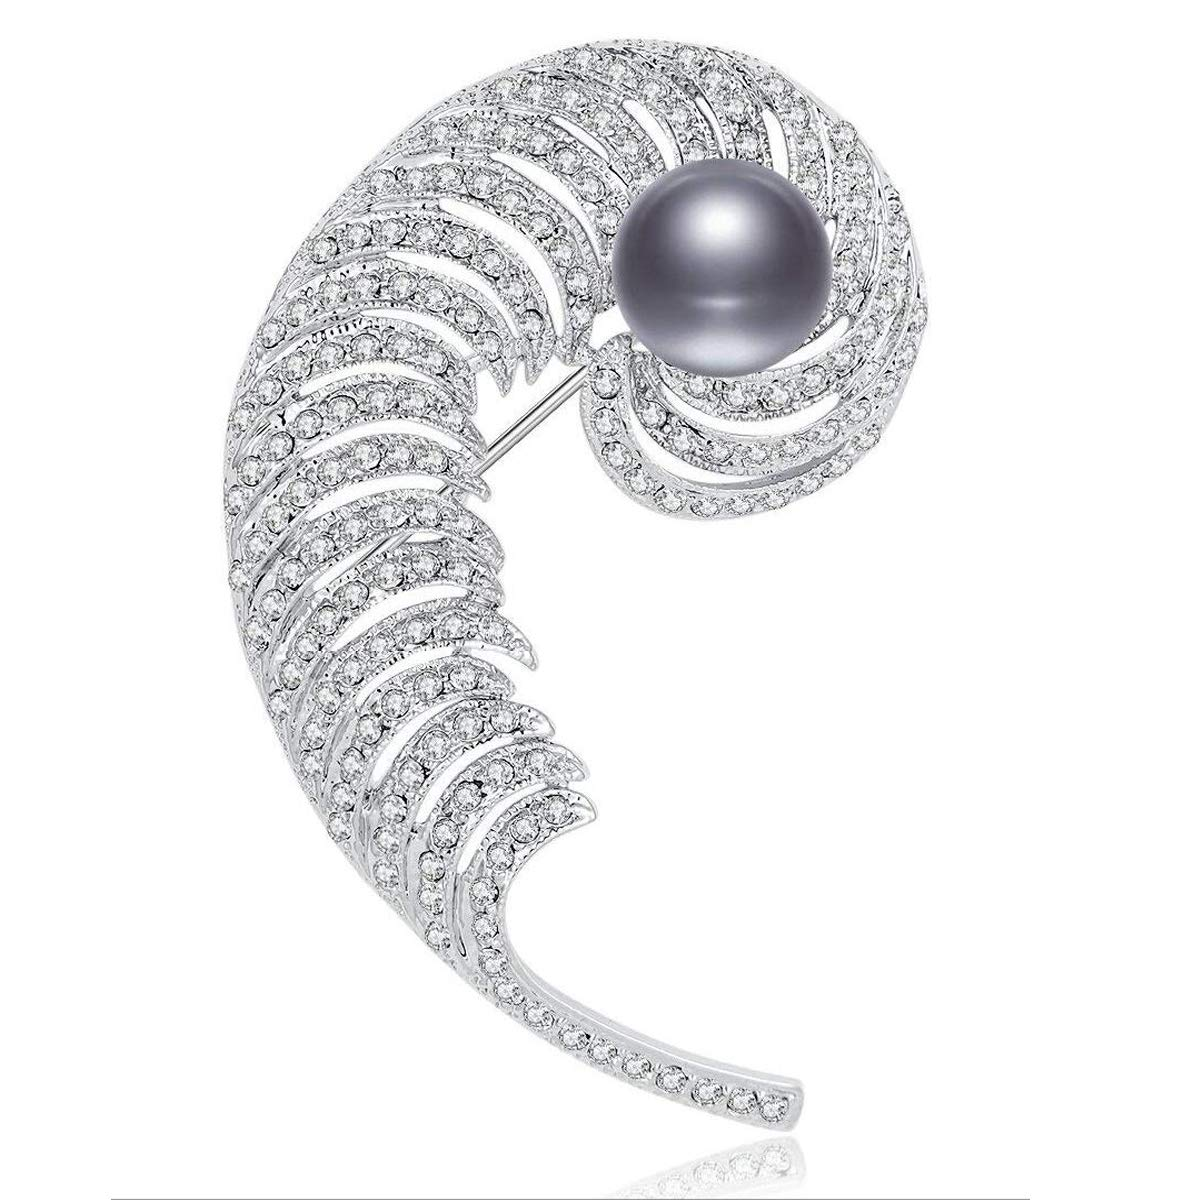 24e8dd197 Amazon.com: RAINBOW BOX Brooches for Women Fashion Feather Zircon Black  Pearl Jewelry Brooch Pins, for Her: Jewelry